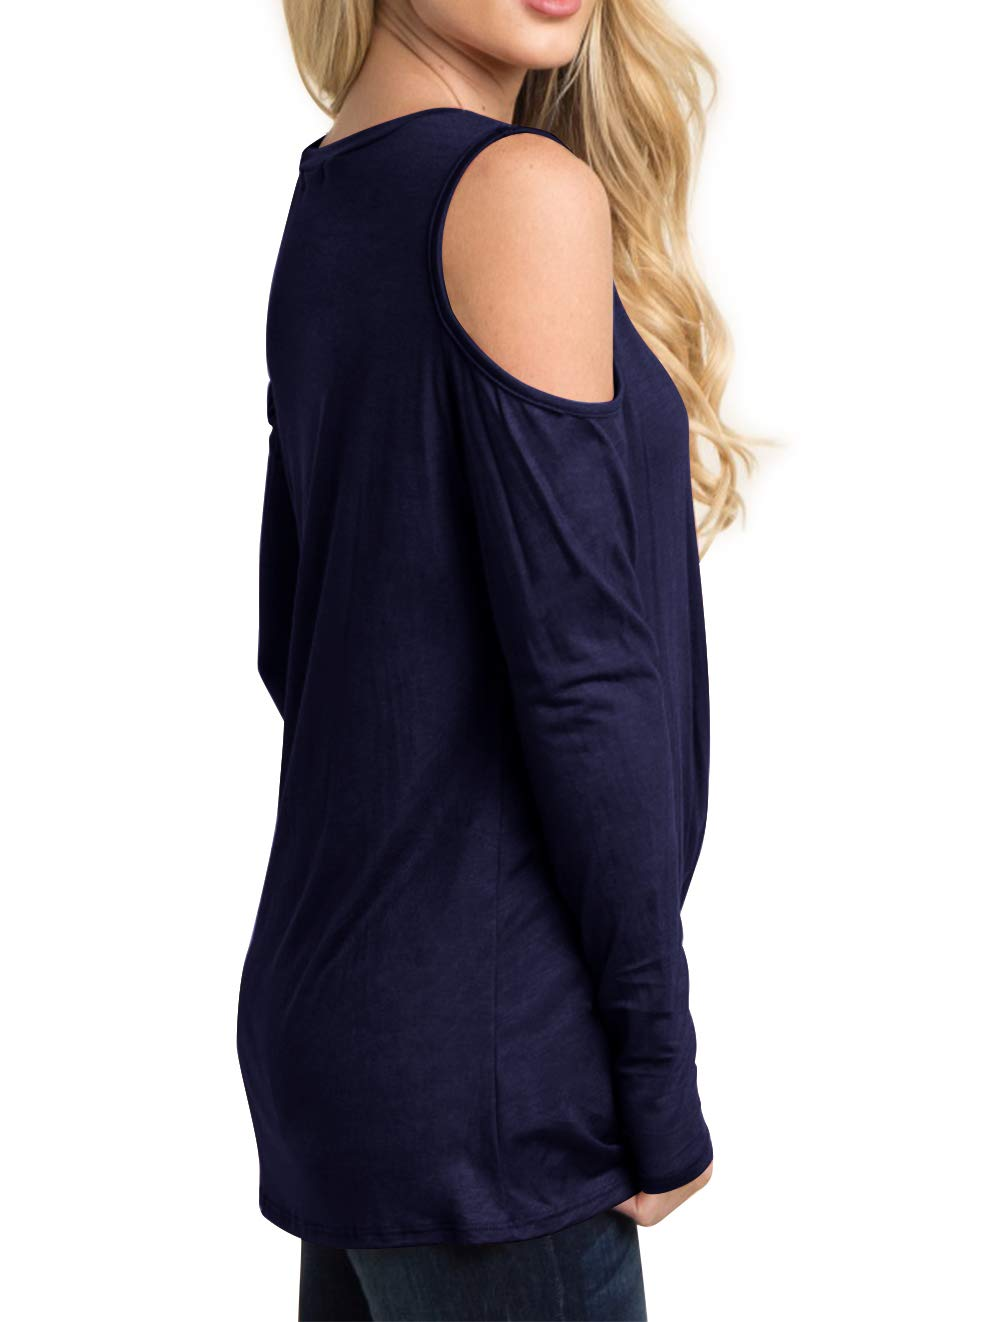 Eanklosco Women's Long Sleeve Cold Shoulder Cut Out T Shirts Casual Knot Tunic Tops (Navy Blue, XL)